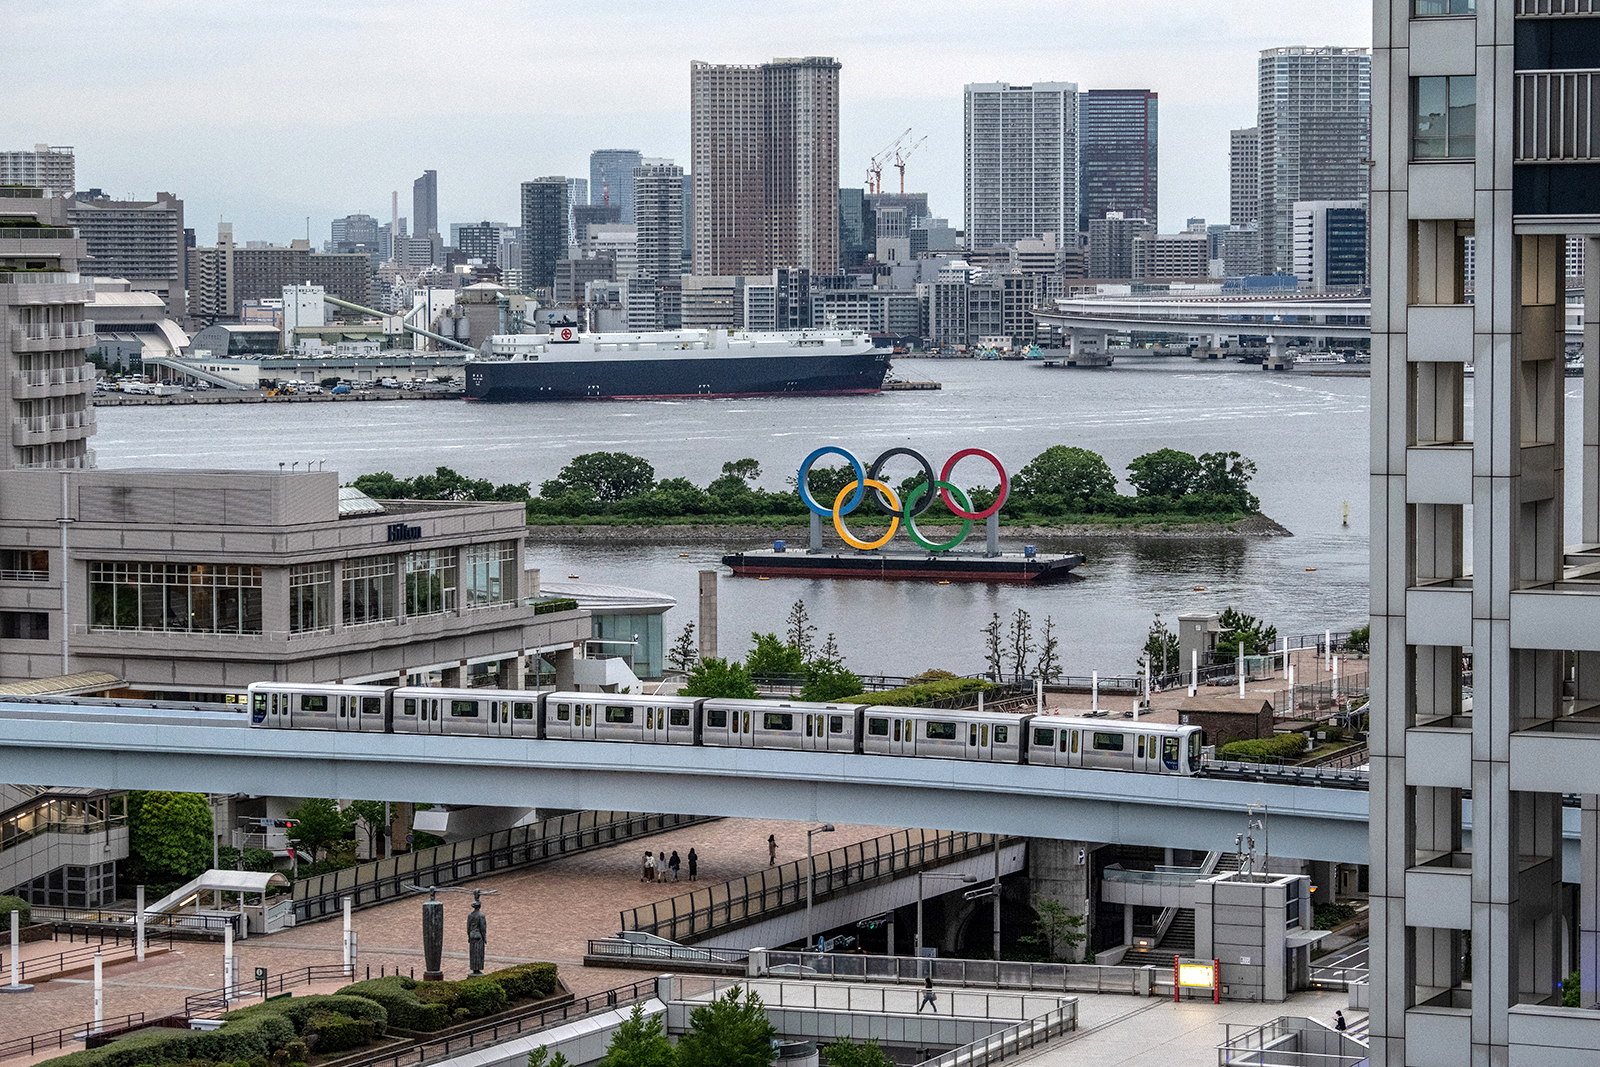 The Olympic Rings are displayed by the Odaiba Marine Park Olympic venue in Tokyo, Japan, on May 12.